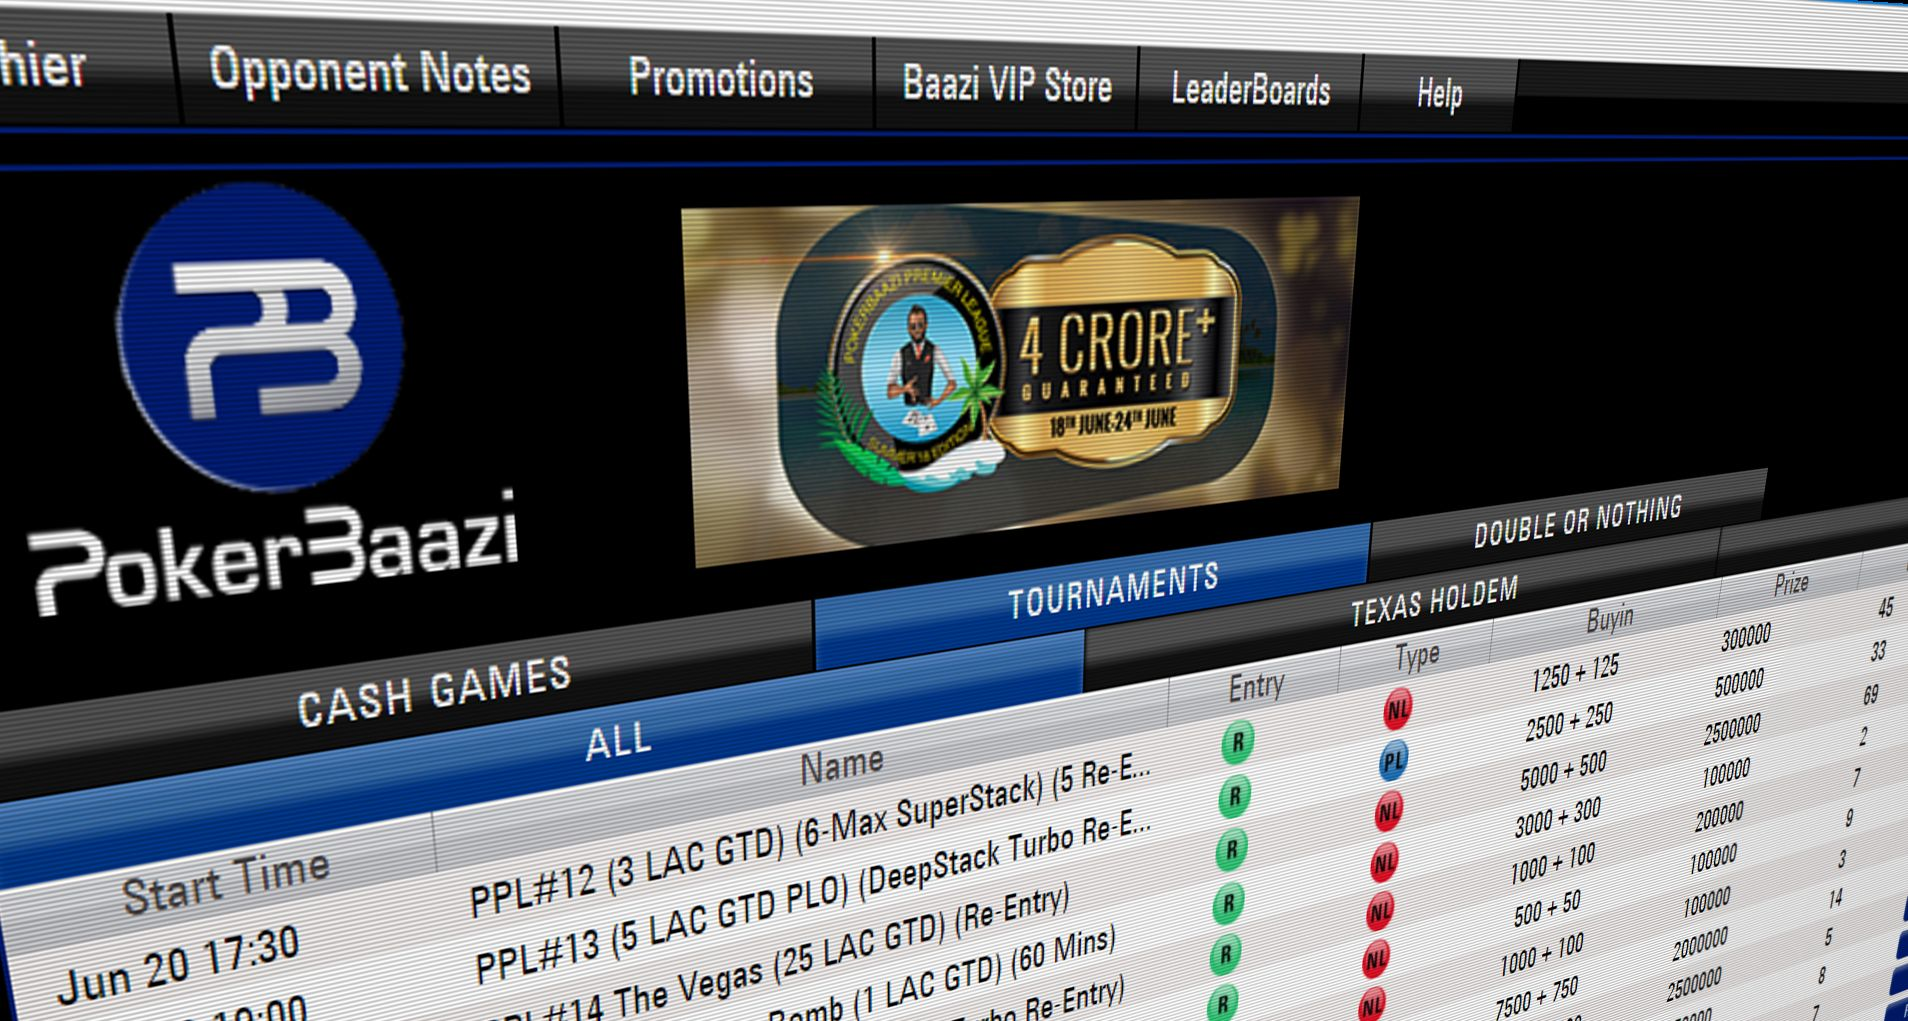 Indian independent online poker room PokerBaazi is back with its most prestigious tournament series, the  PokerBaazi Premier League (PPL).